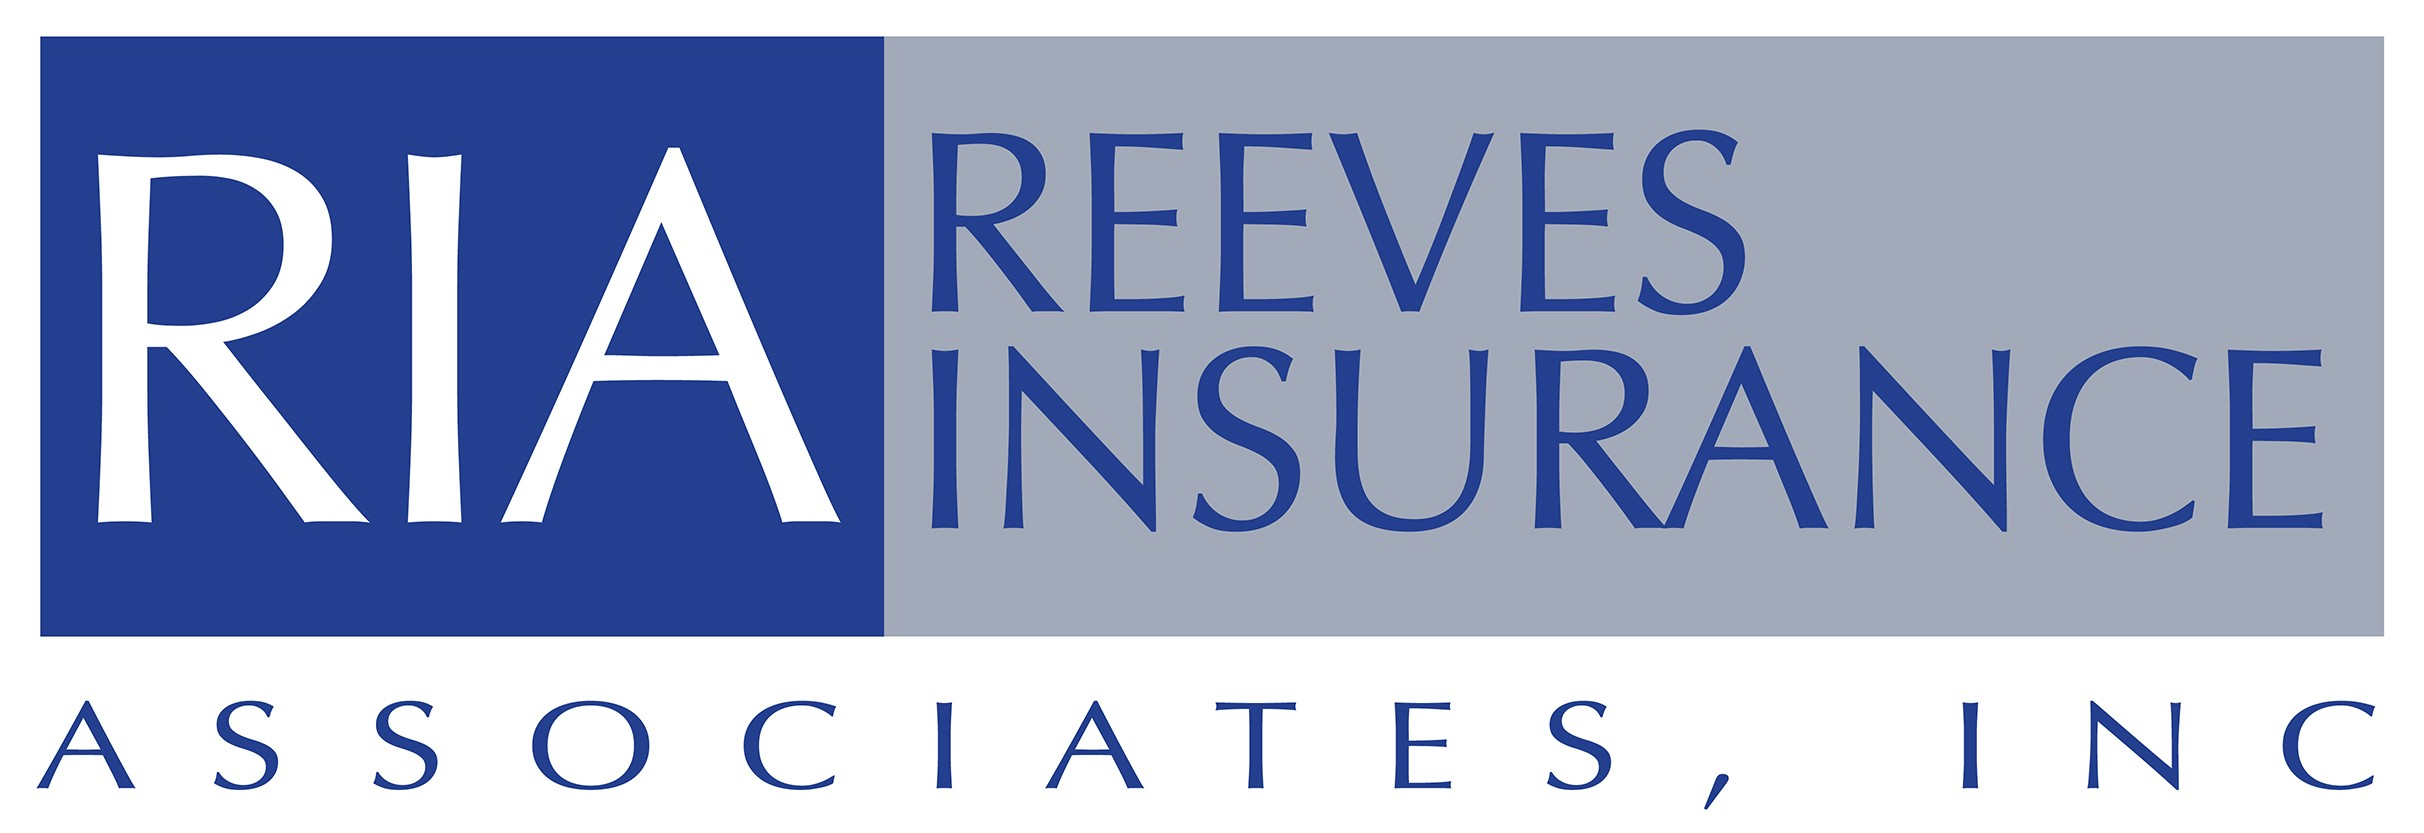 Reeves Insurance Associates